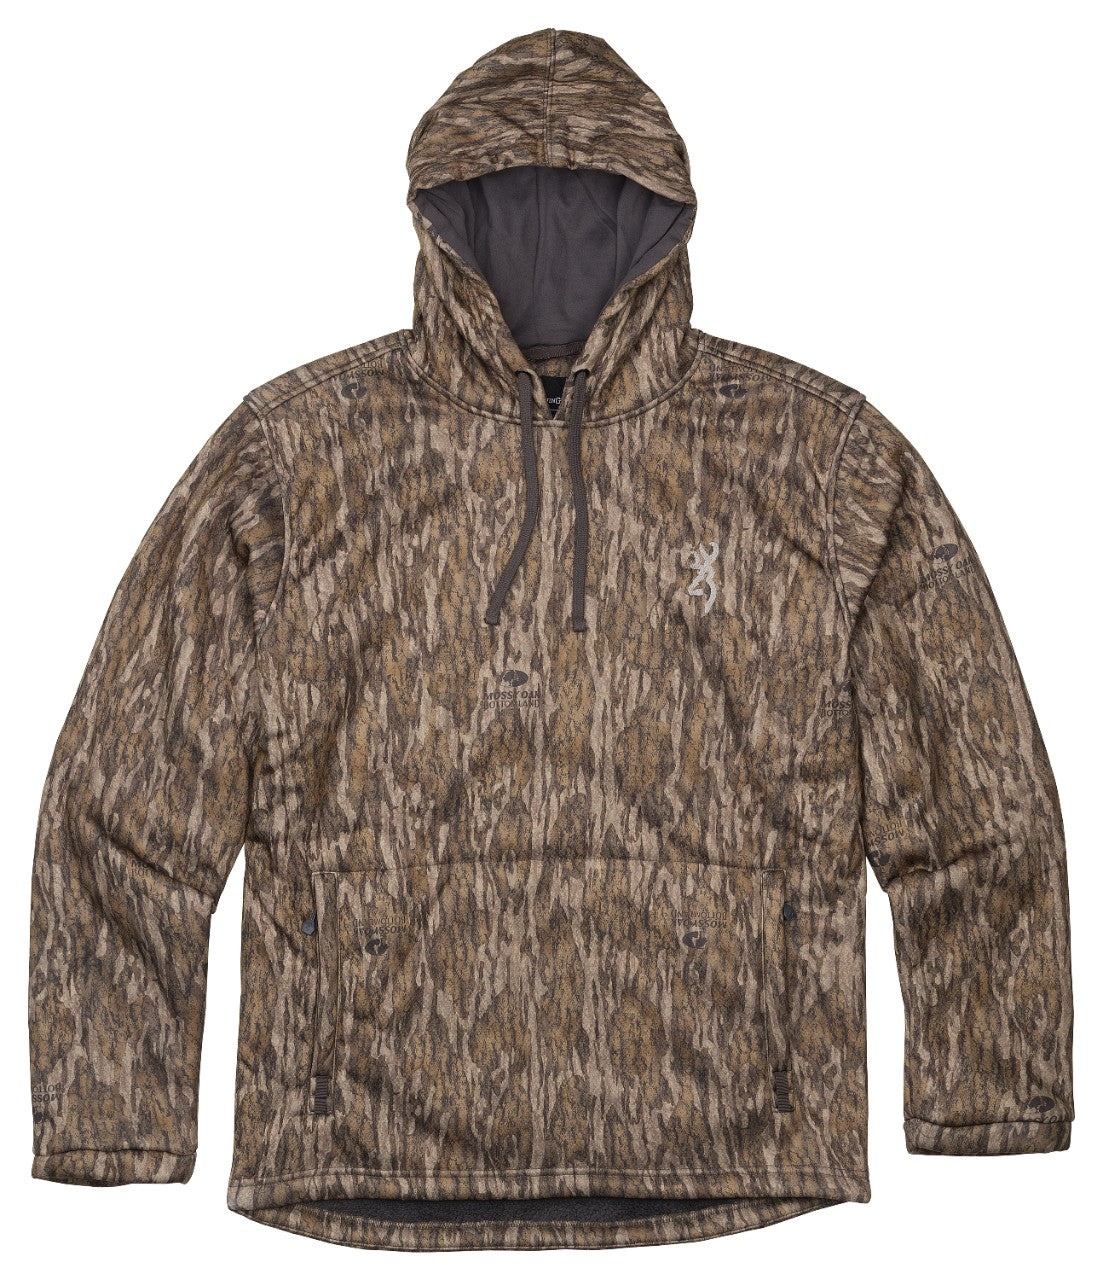 HOOD,WW,HIGHPILE,MOBL,2XL